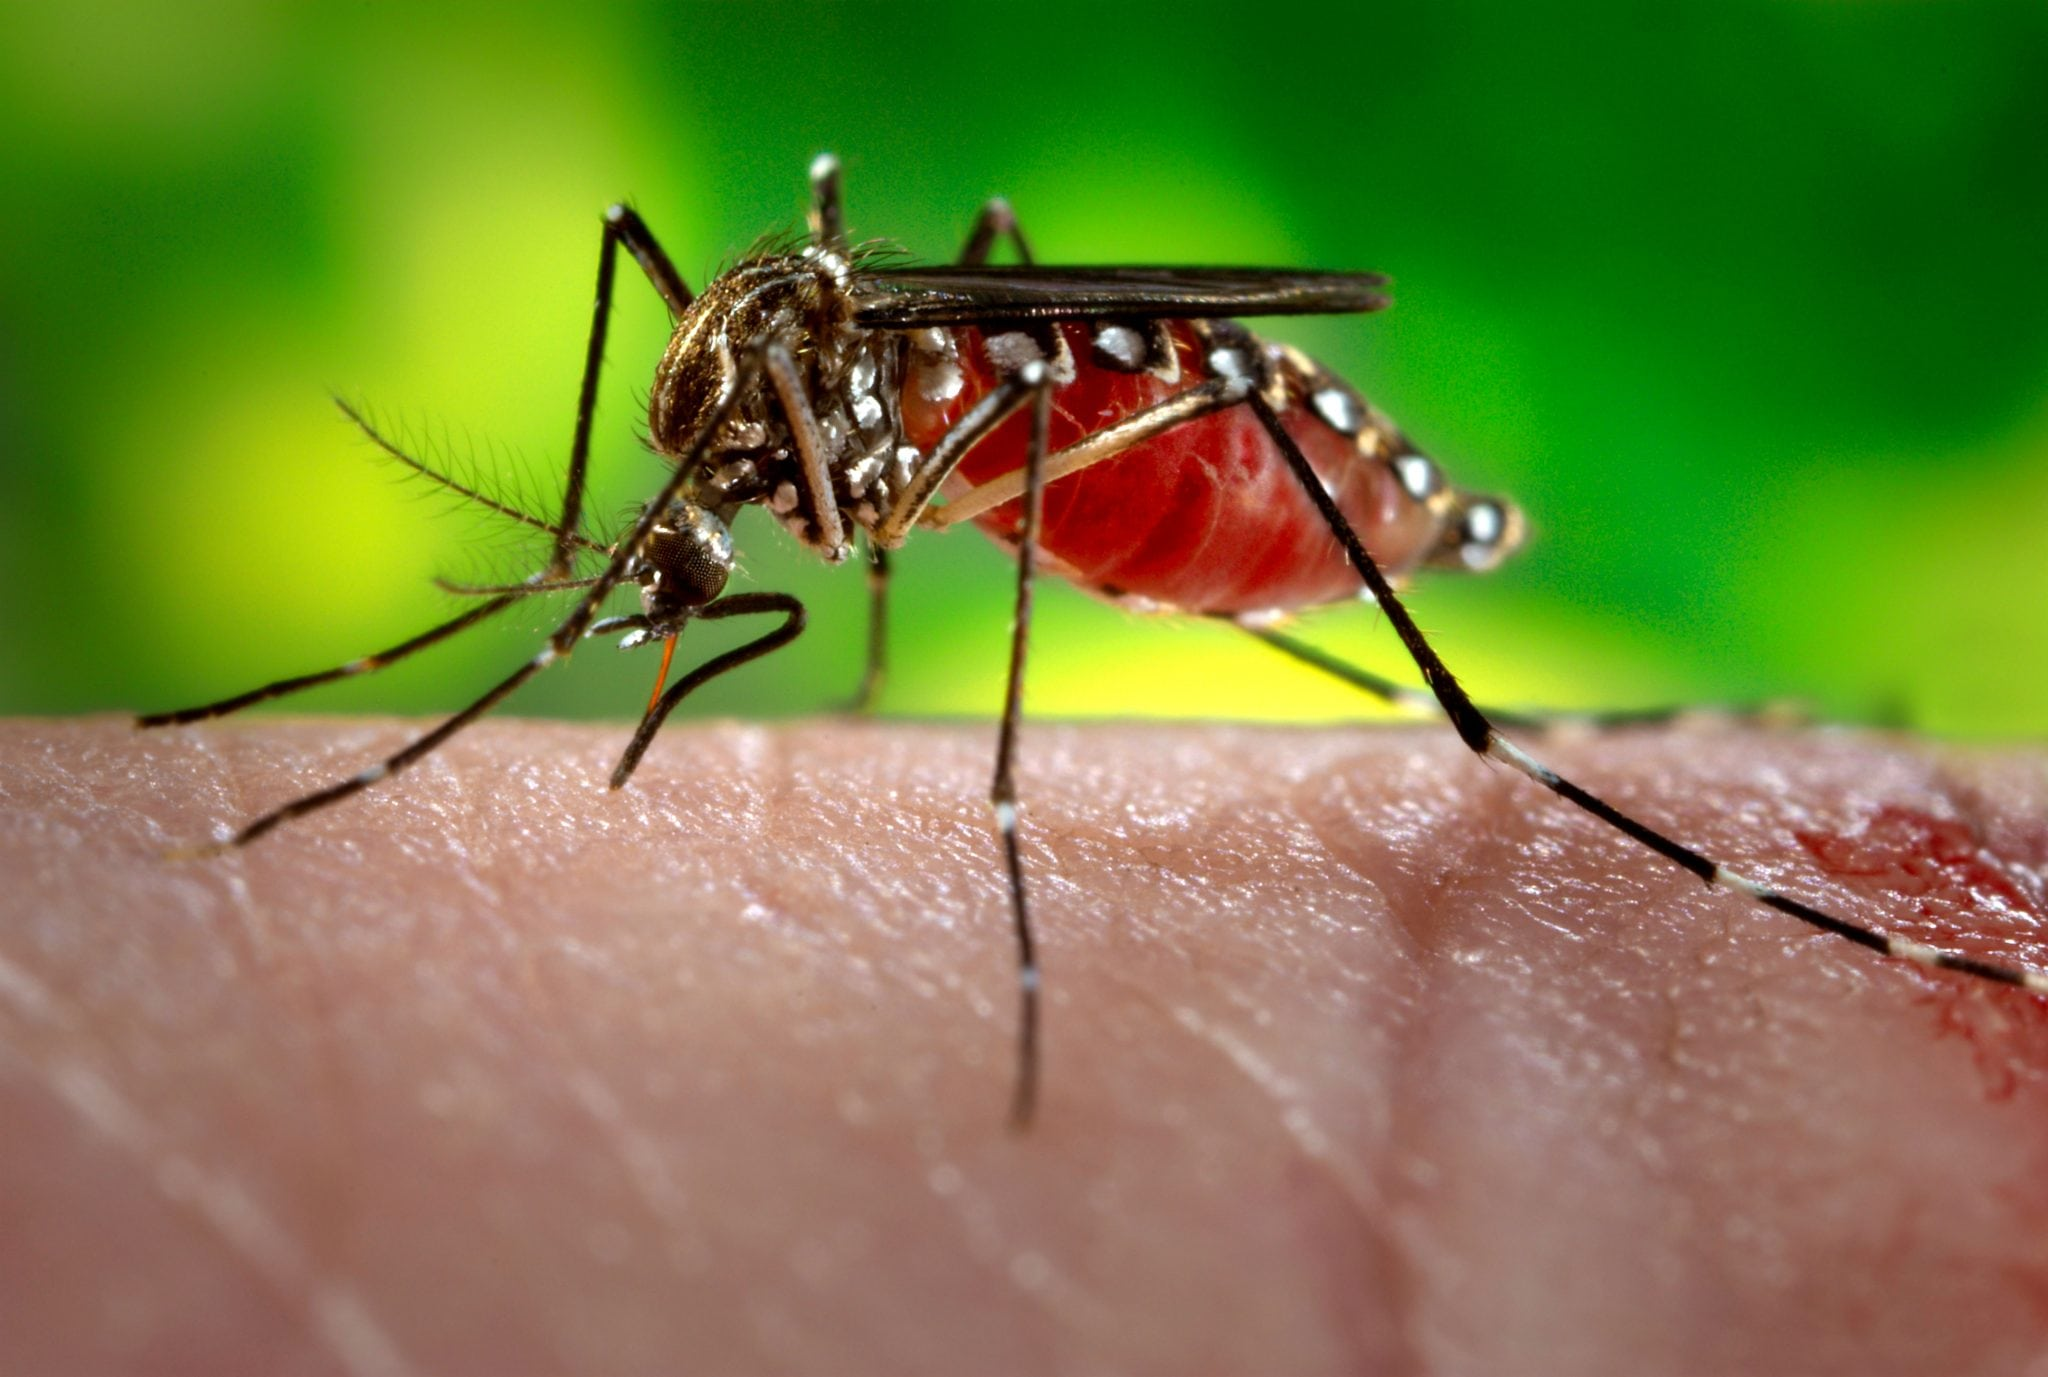 Keep Your Home Insect-free With Mosquito Pest Control Phoenix Services